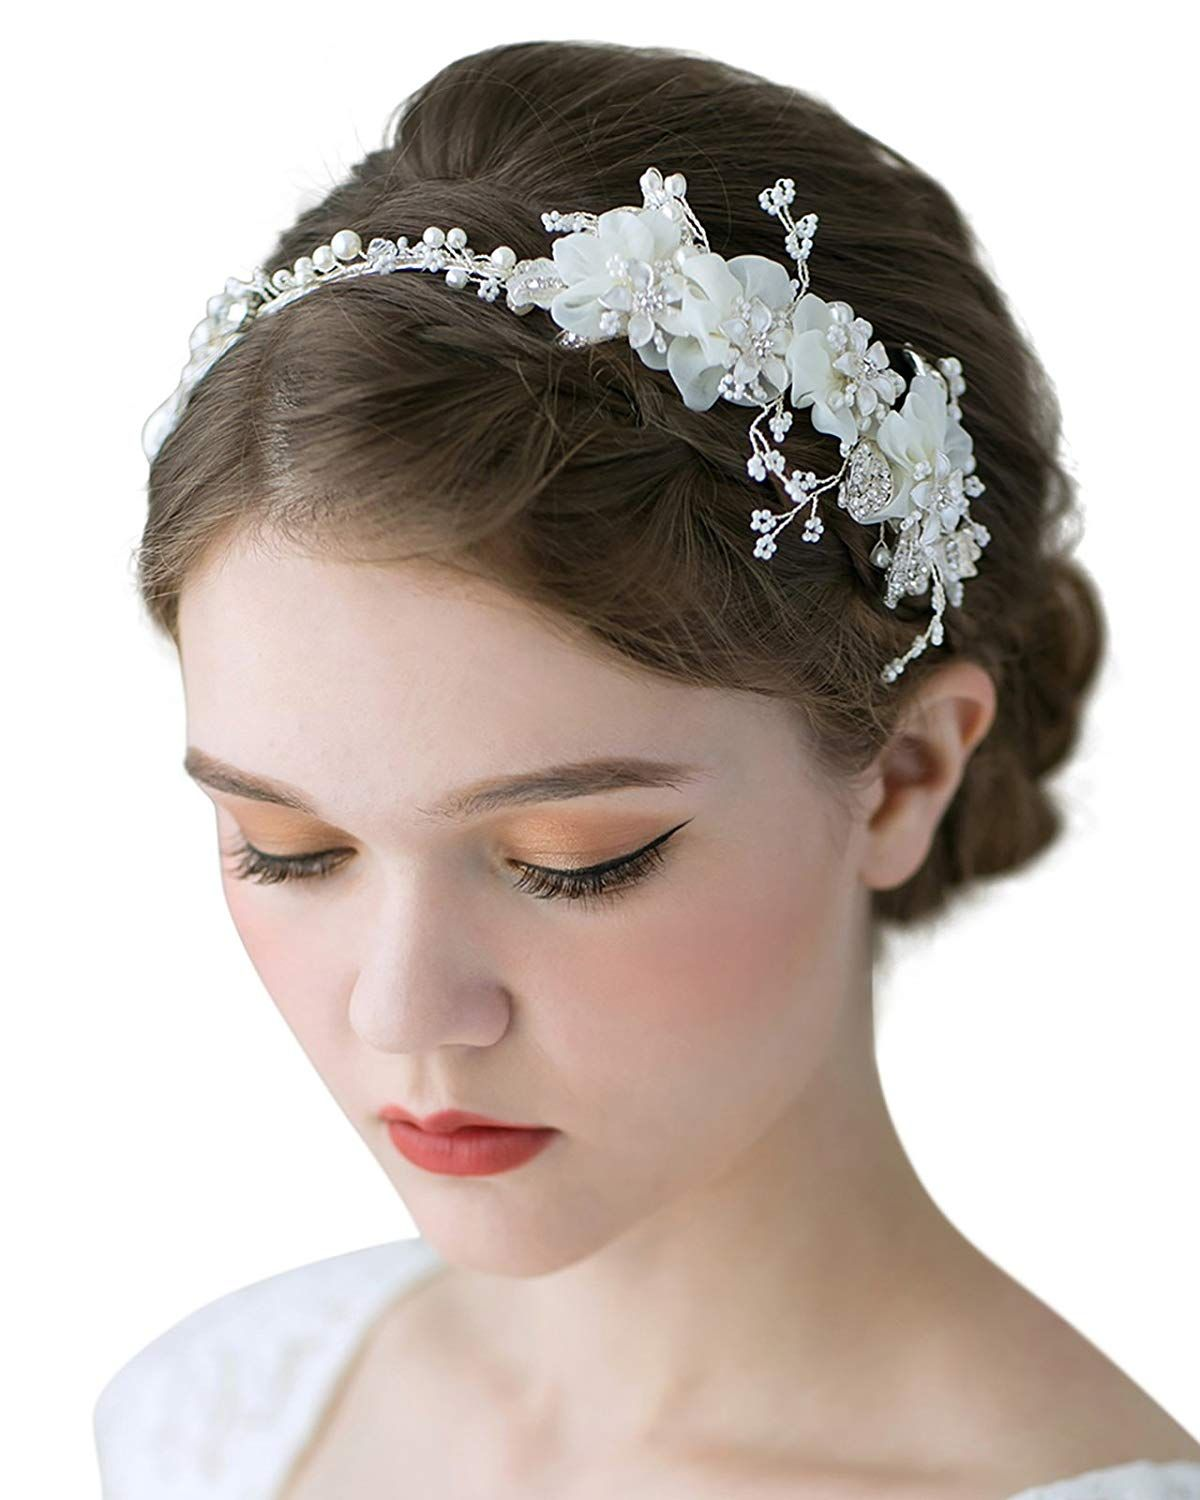 sweetv romantic flower headbands ivory wedding hair bands